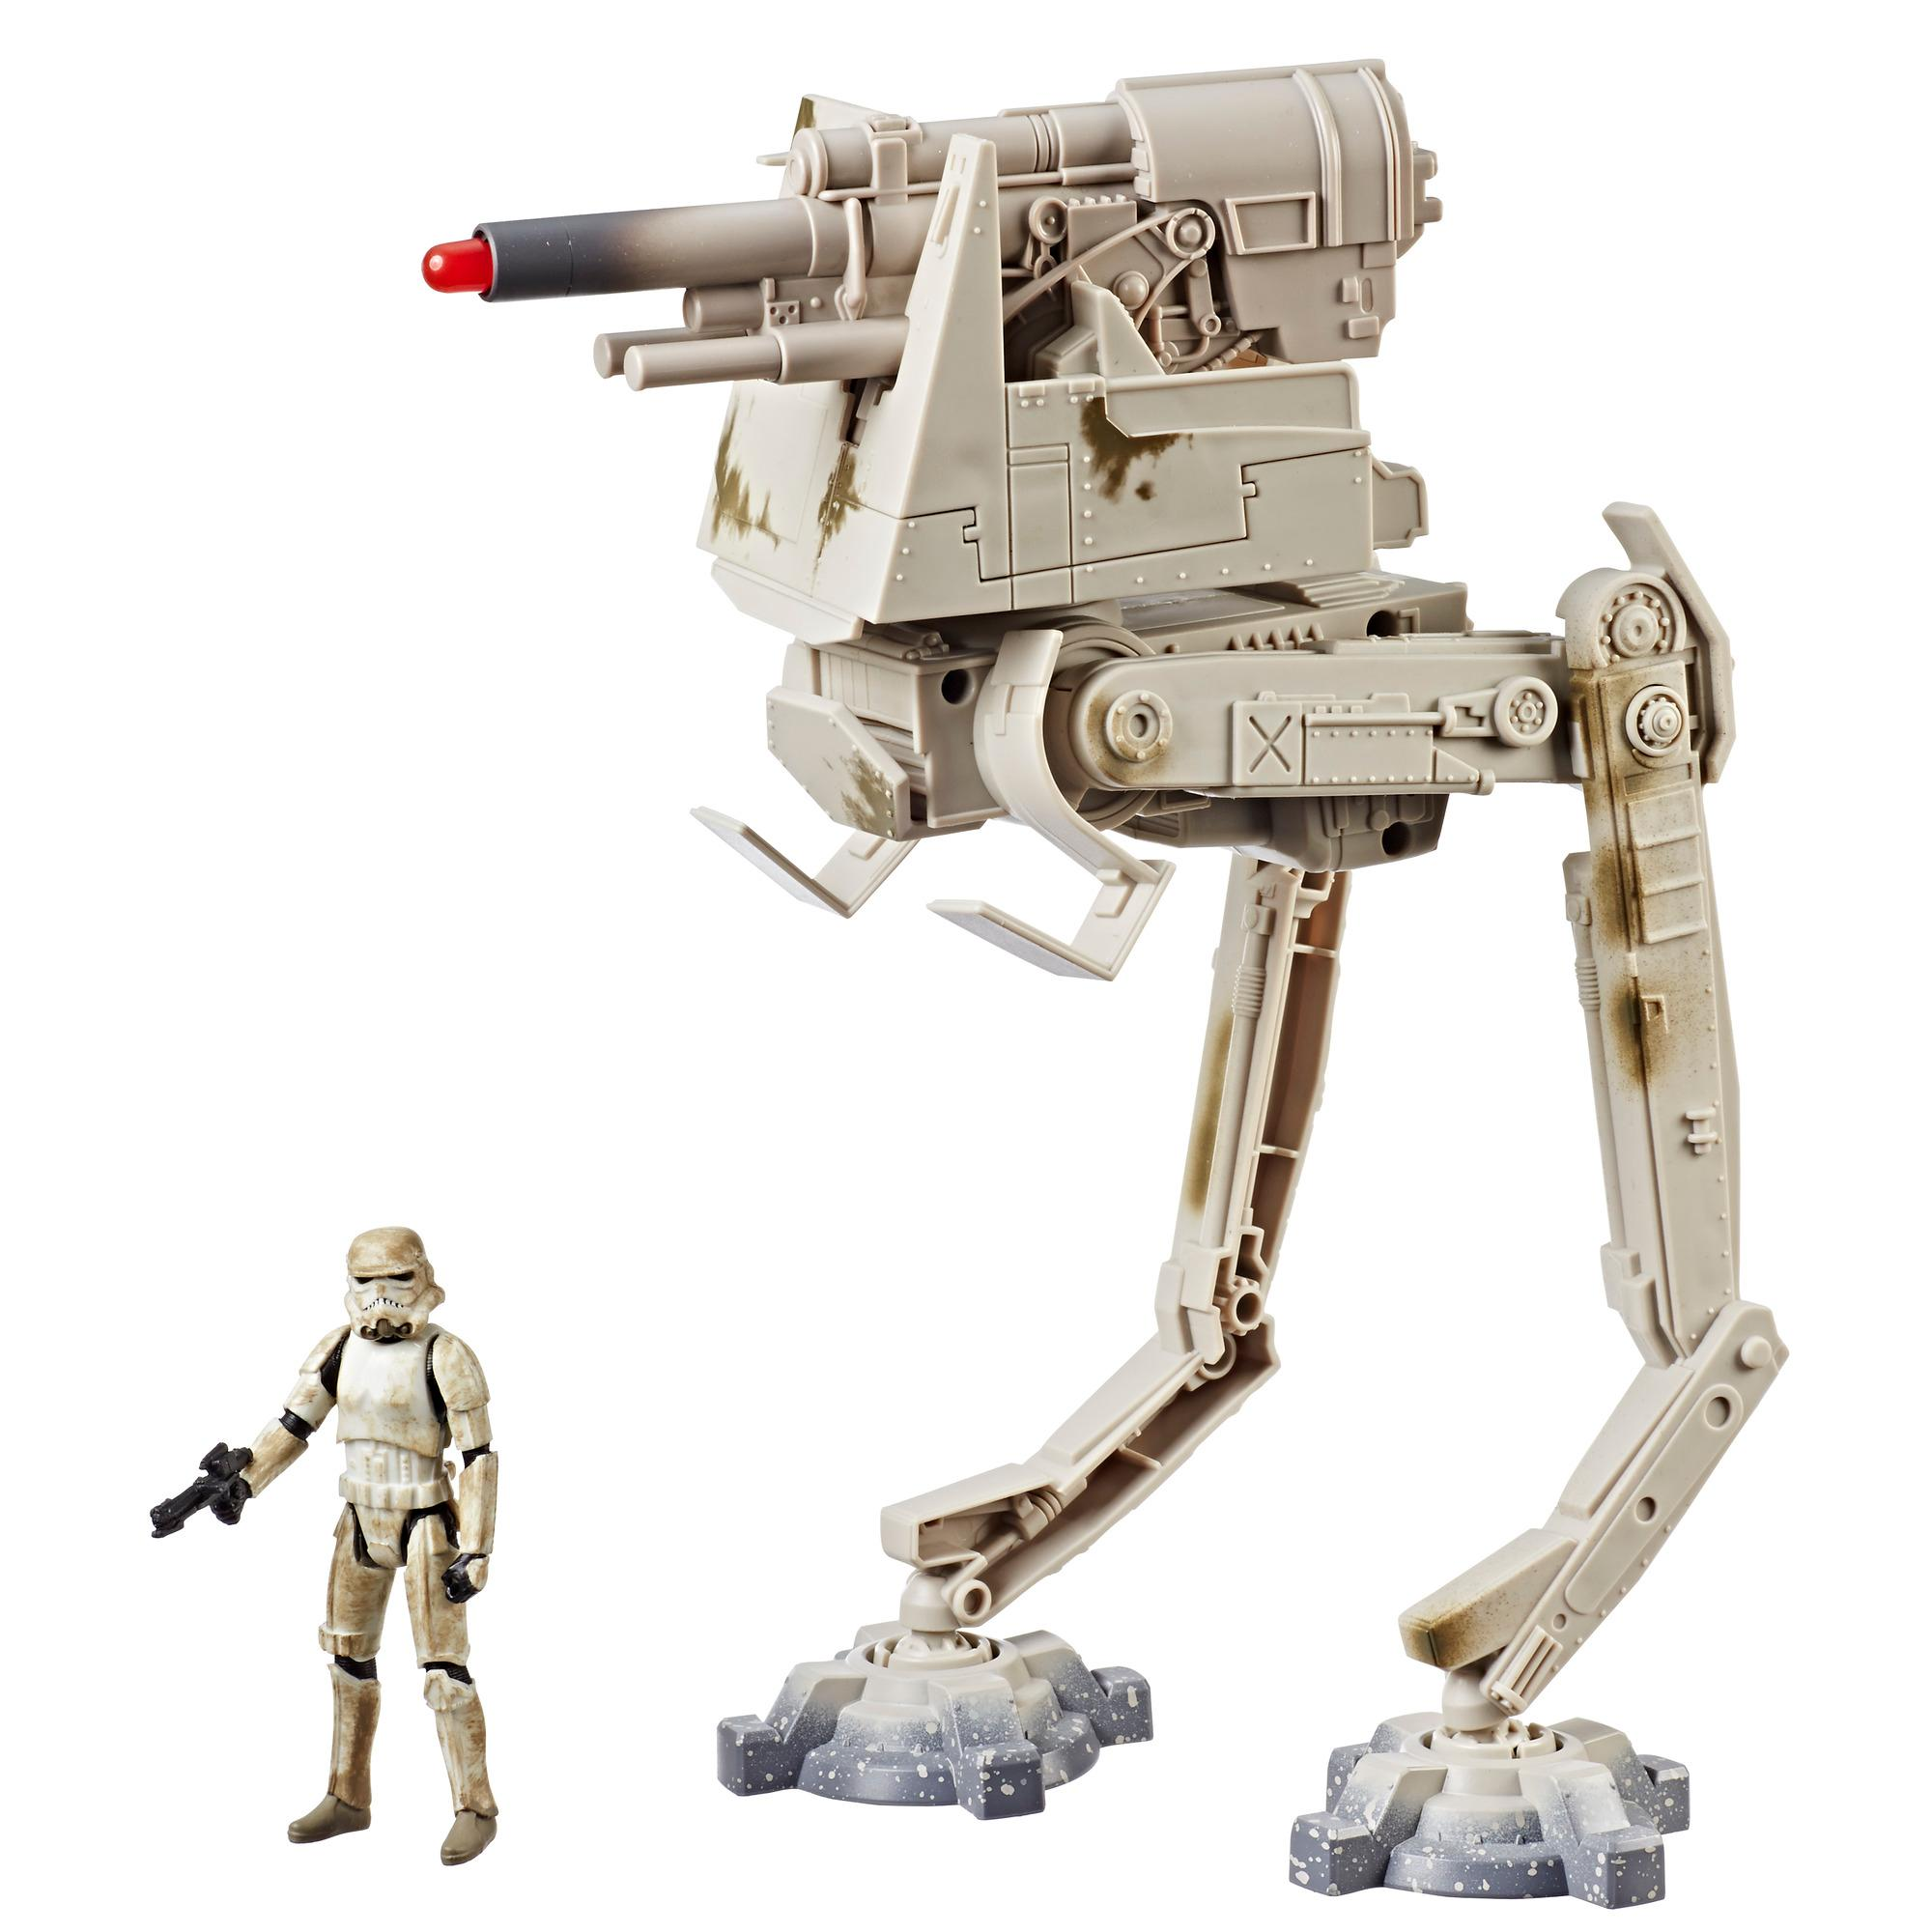 Star Wars Force Link 2.0 AT-DT Imperial Walker with Stormtrooper (Mimban) Figure